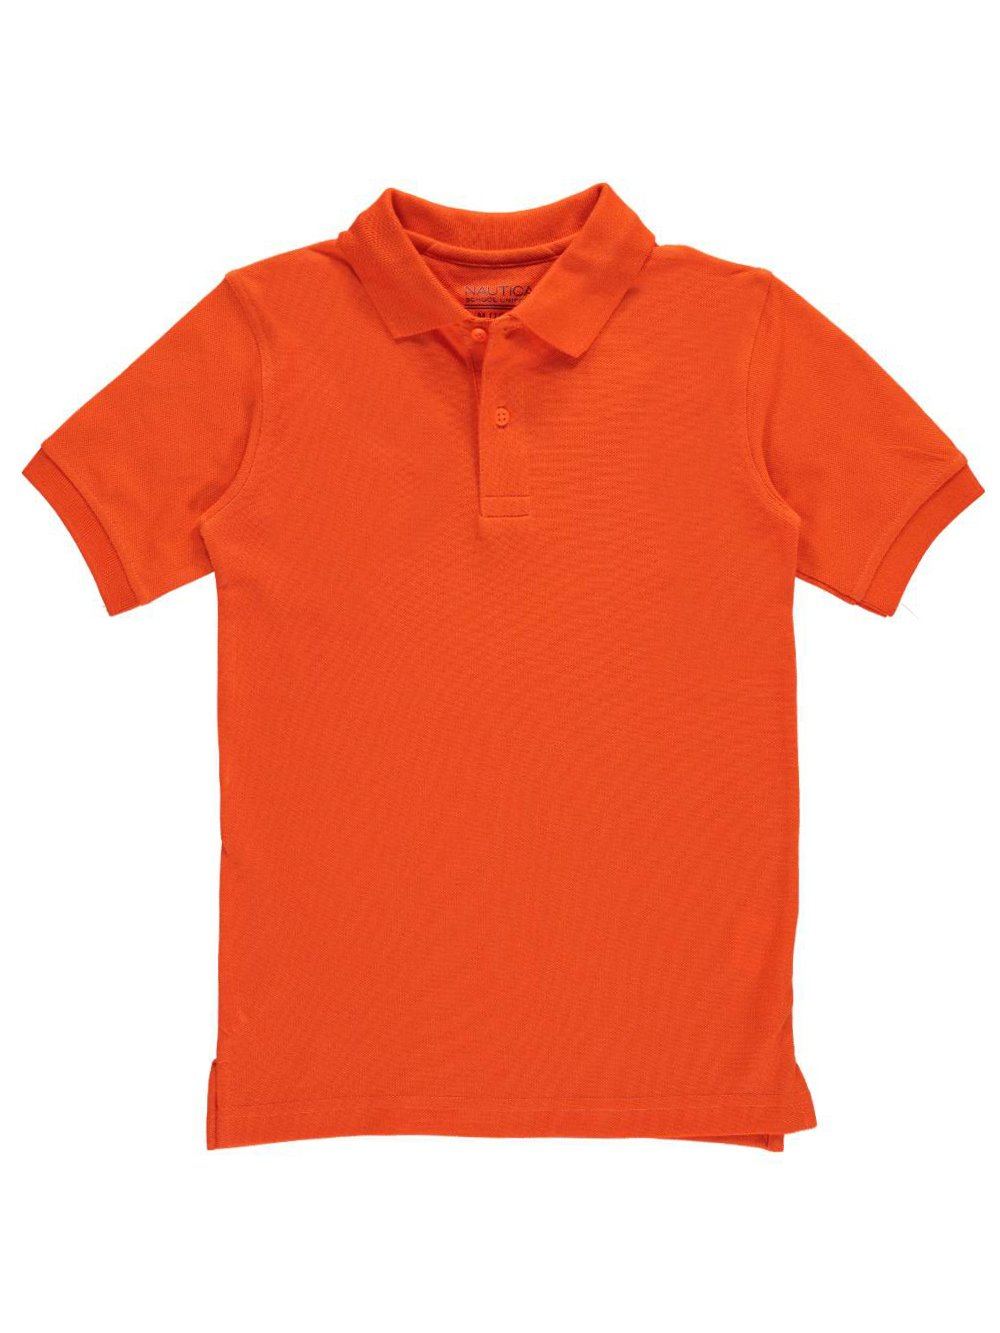 Nautica Big Boys' School Uniform Pique Polo